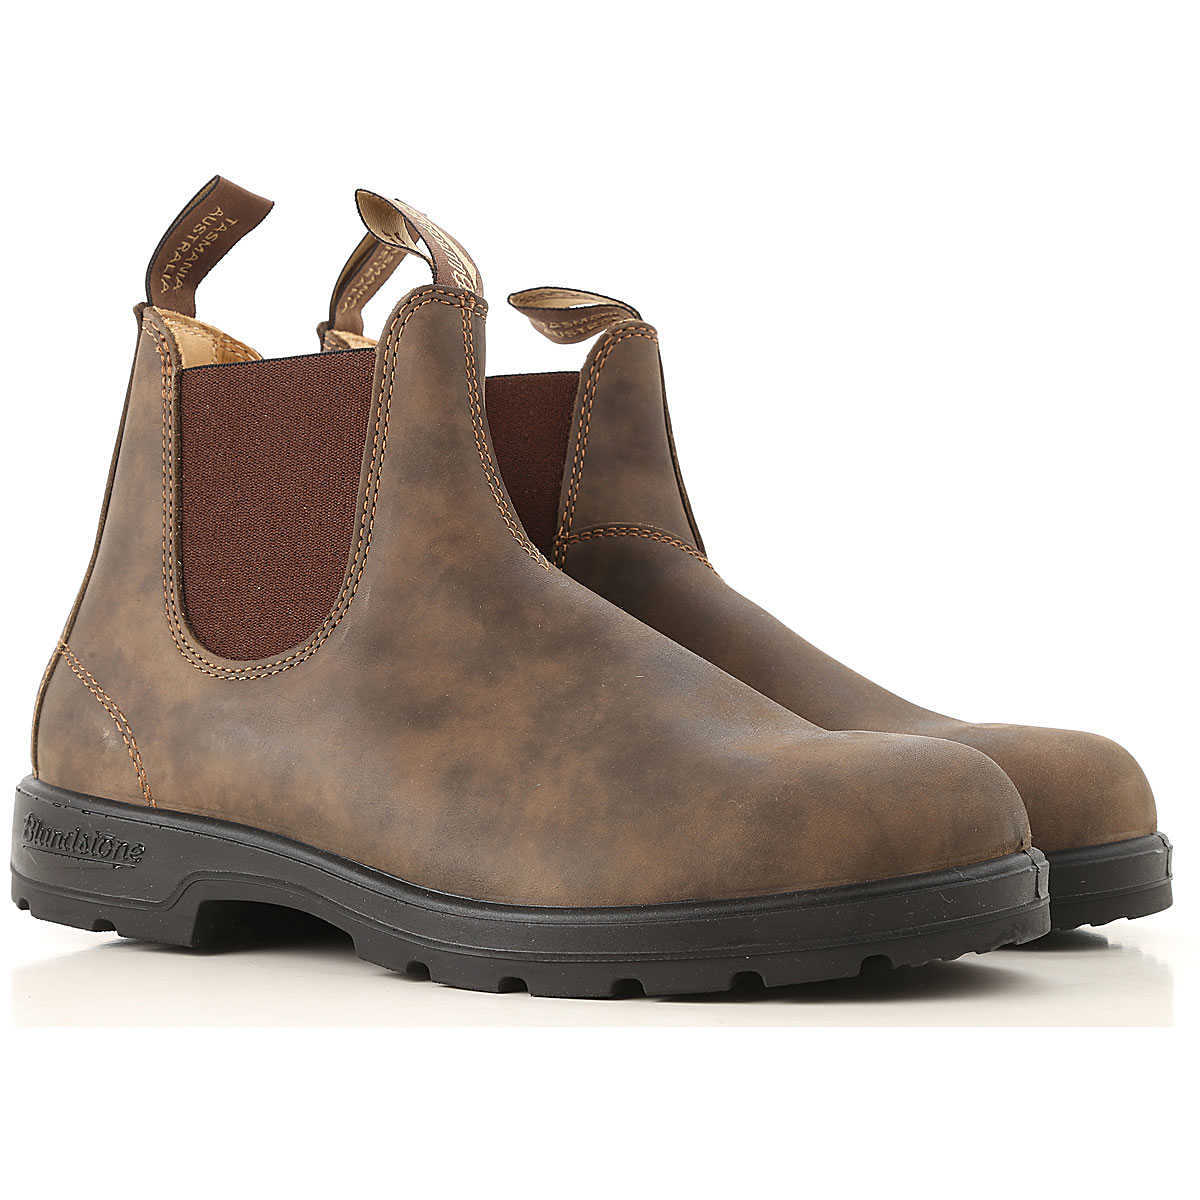 Blundstone Boots for Men Booties On Sale - GOOFASH